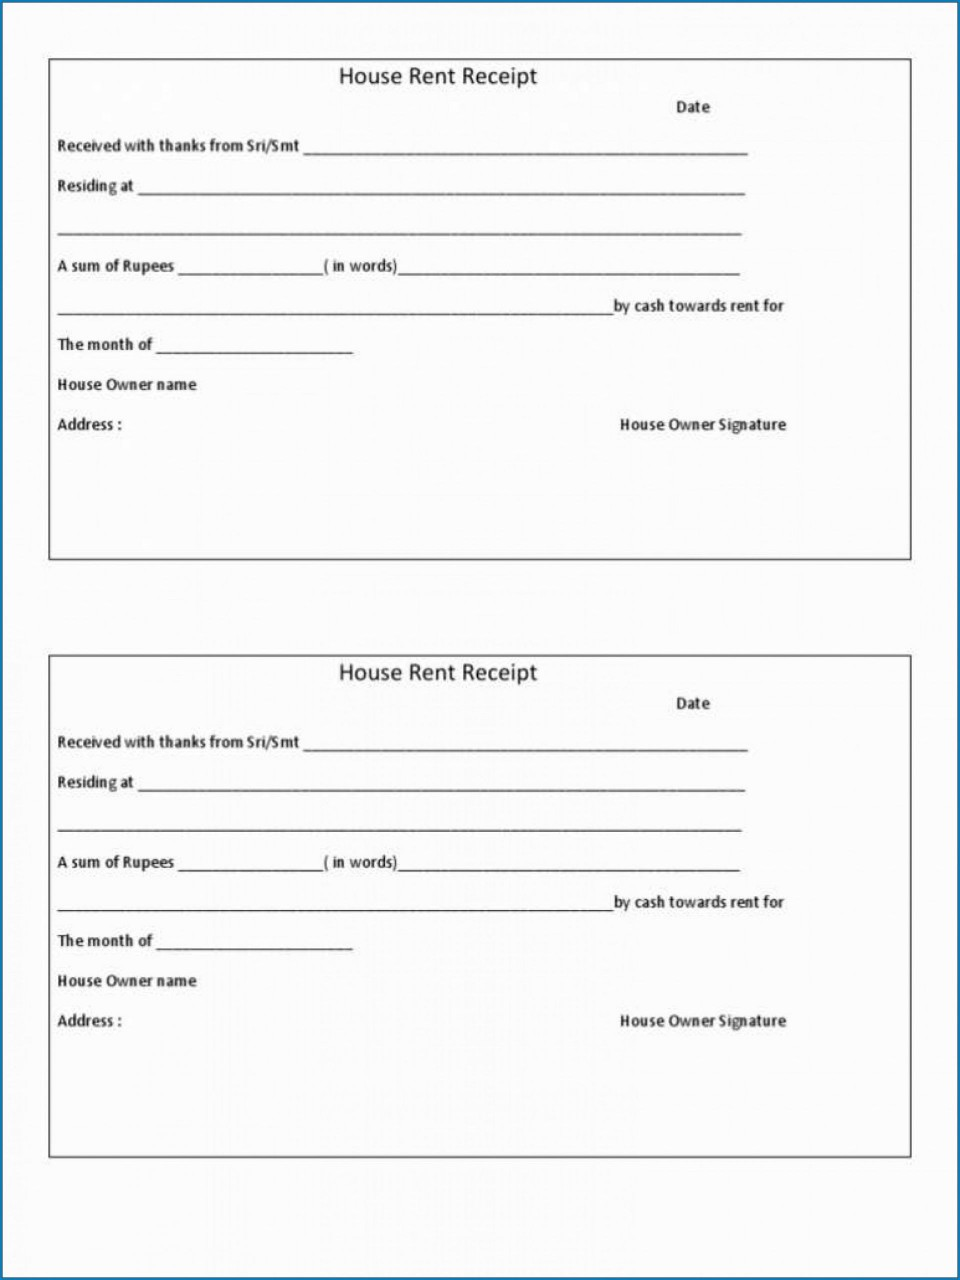 009 Stirring House Rent Receipt Sample Doc Design  Template Word Document Free Download Format For Income Tax960